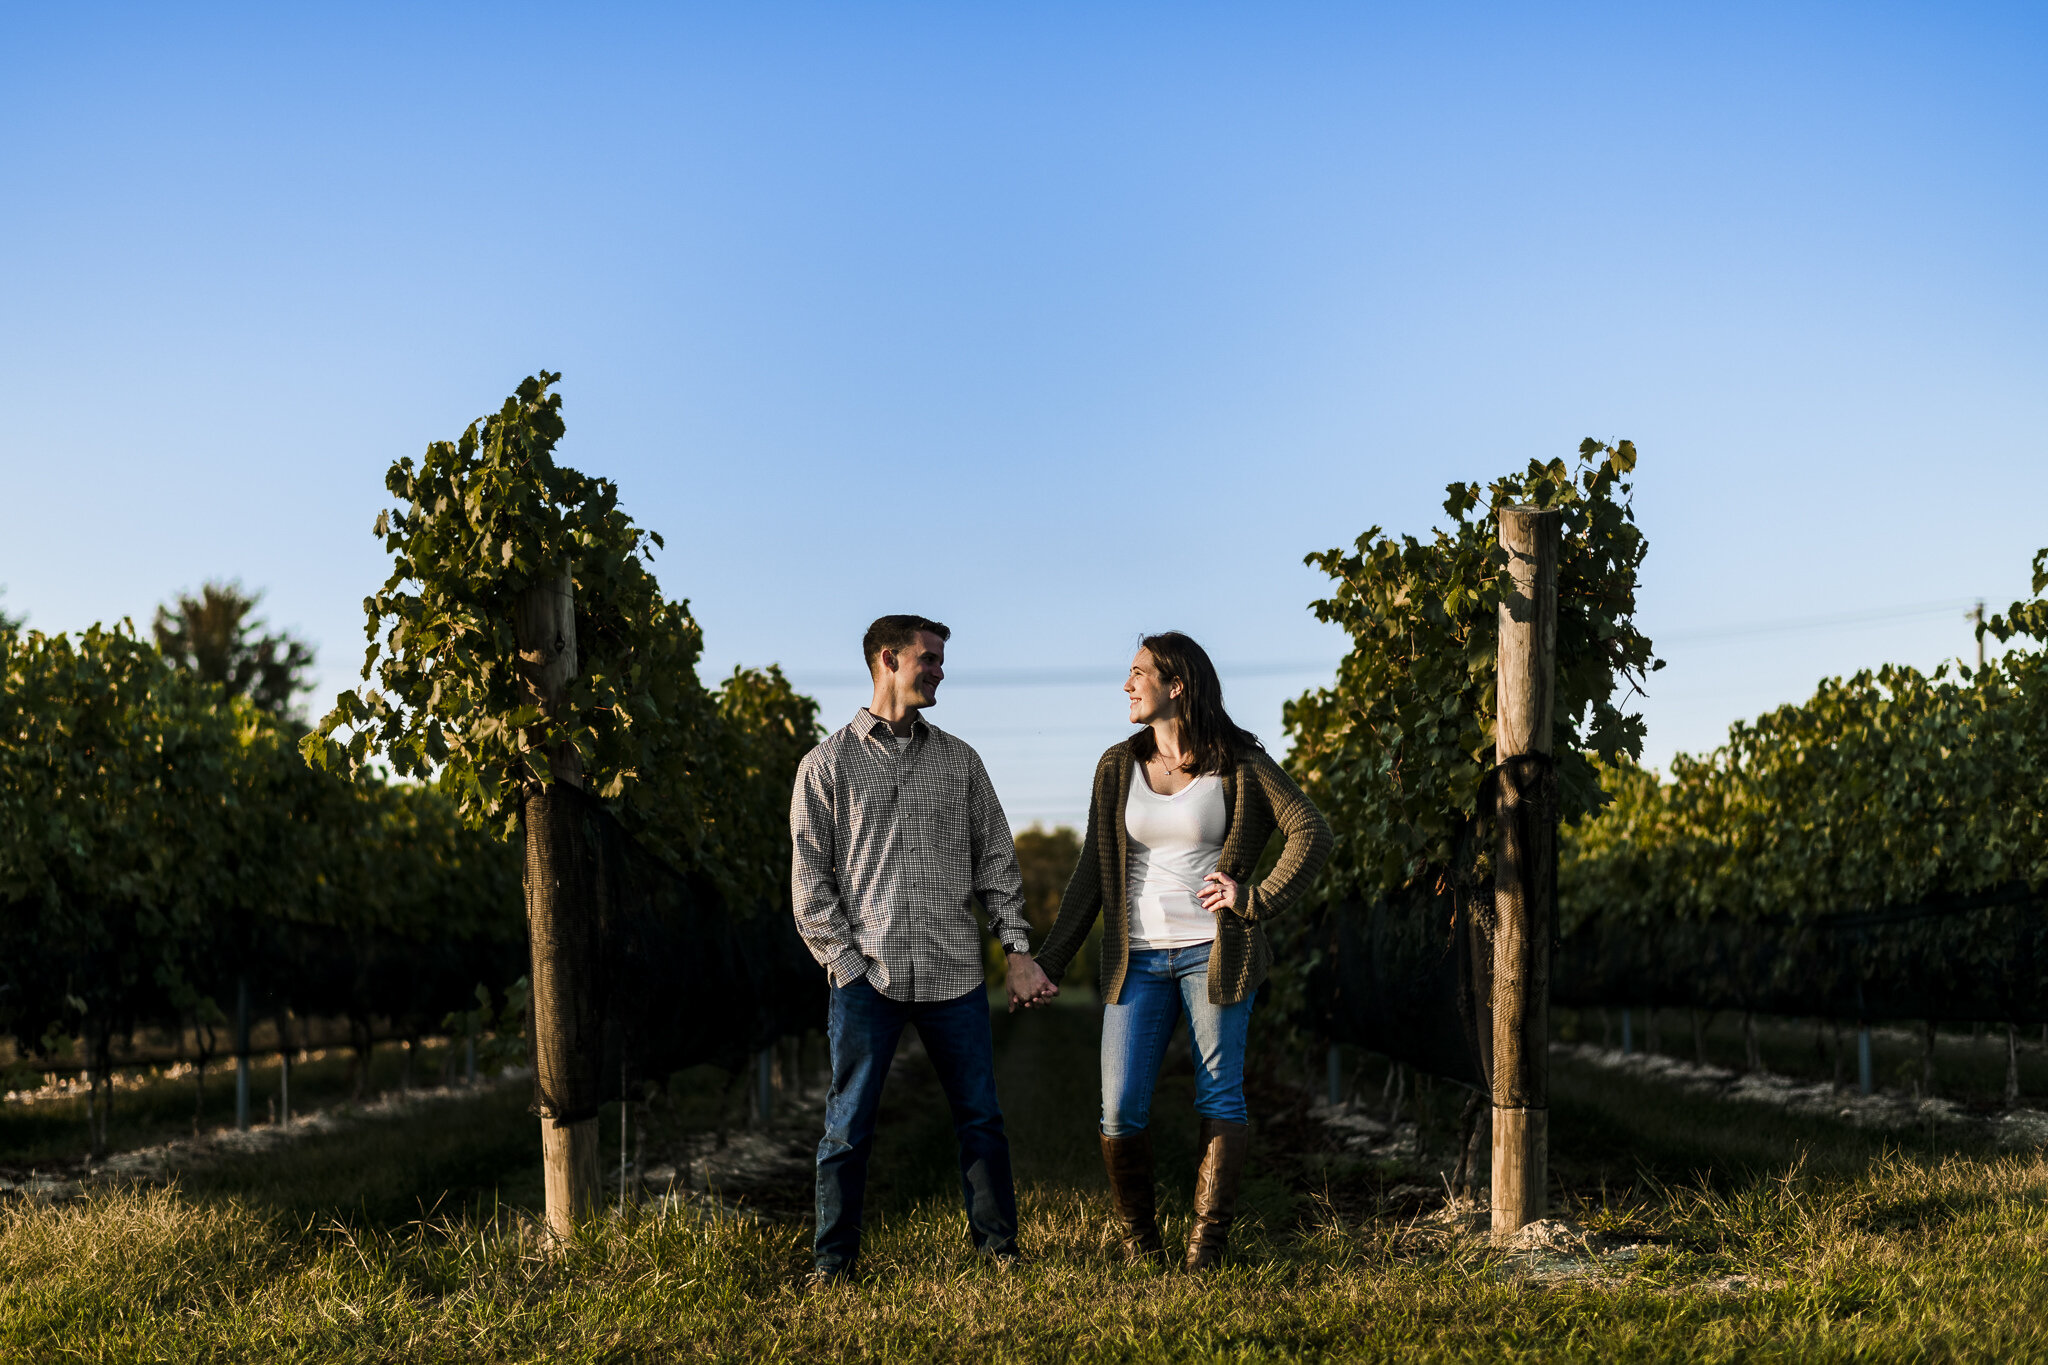 Carlin-White-Horse-Winery-Engagement-Photos-10.JPG